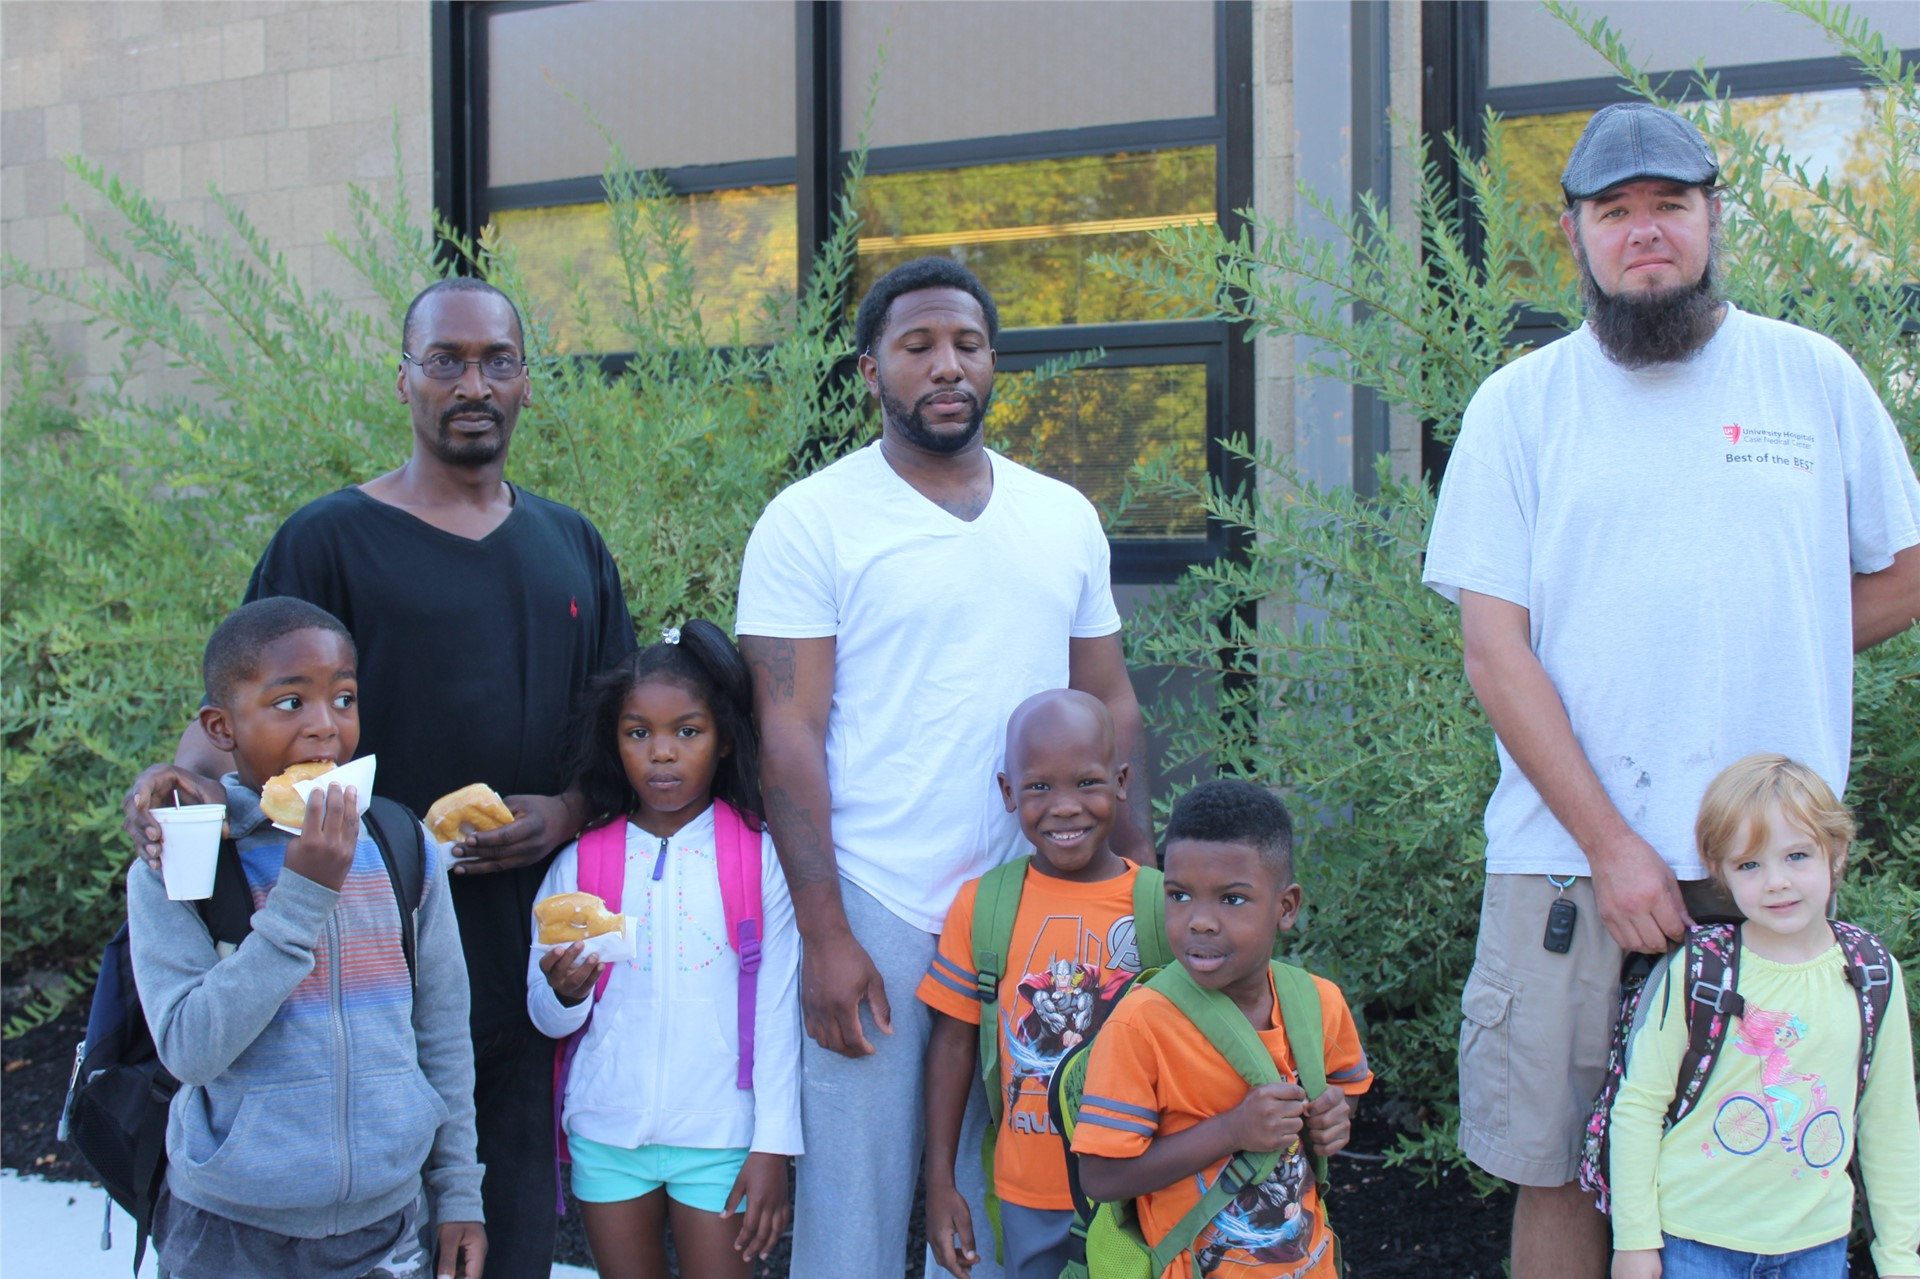 Dudes and Dads participate in County Father Walk